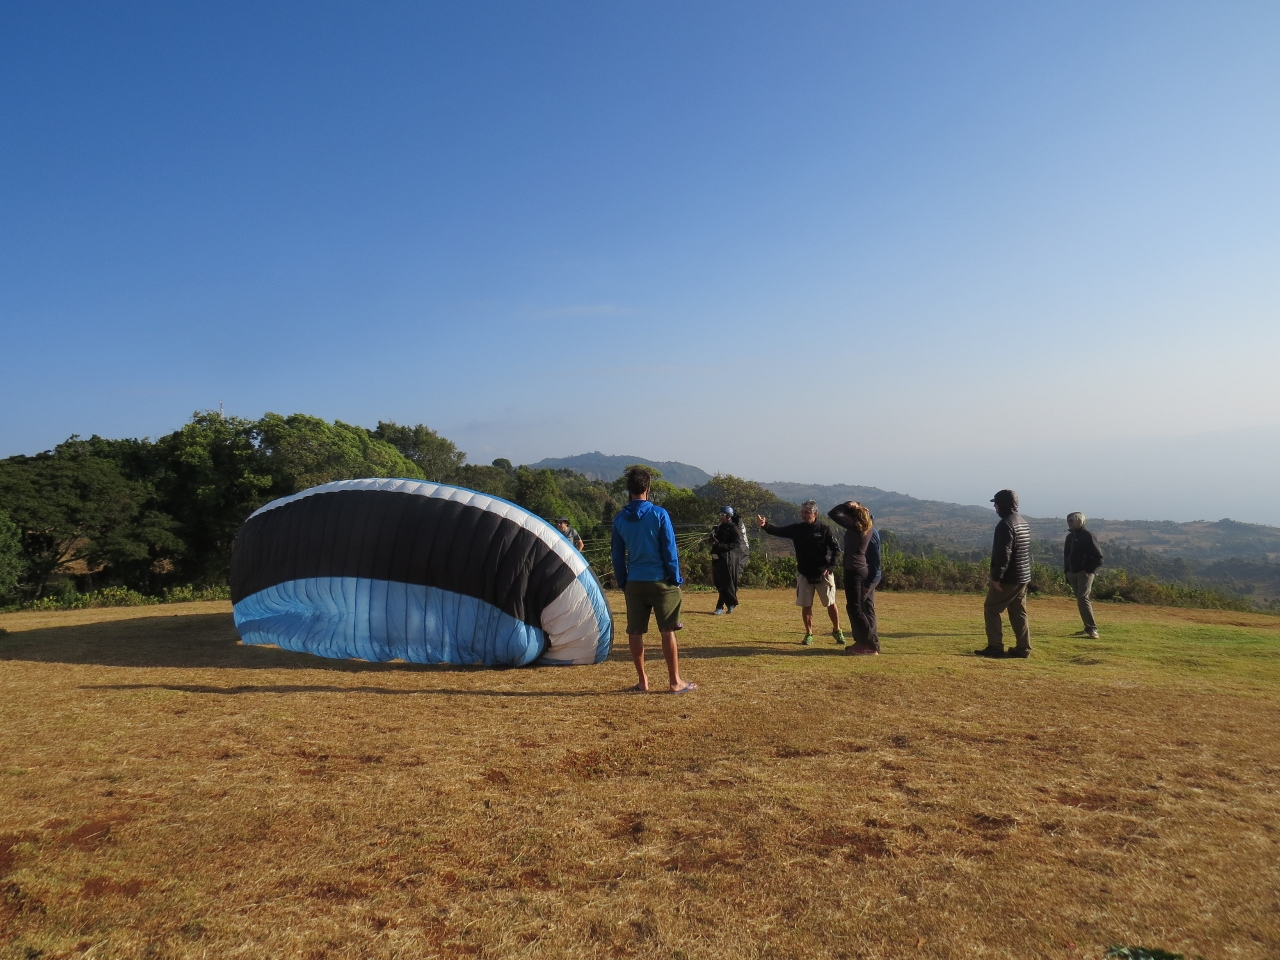 Paragliders on Elgeyo Marakwet escarpment getting ready to take off. Copyright Rupi Mangat